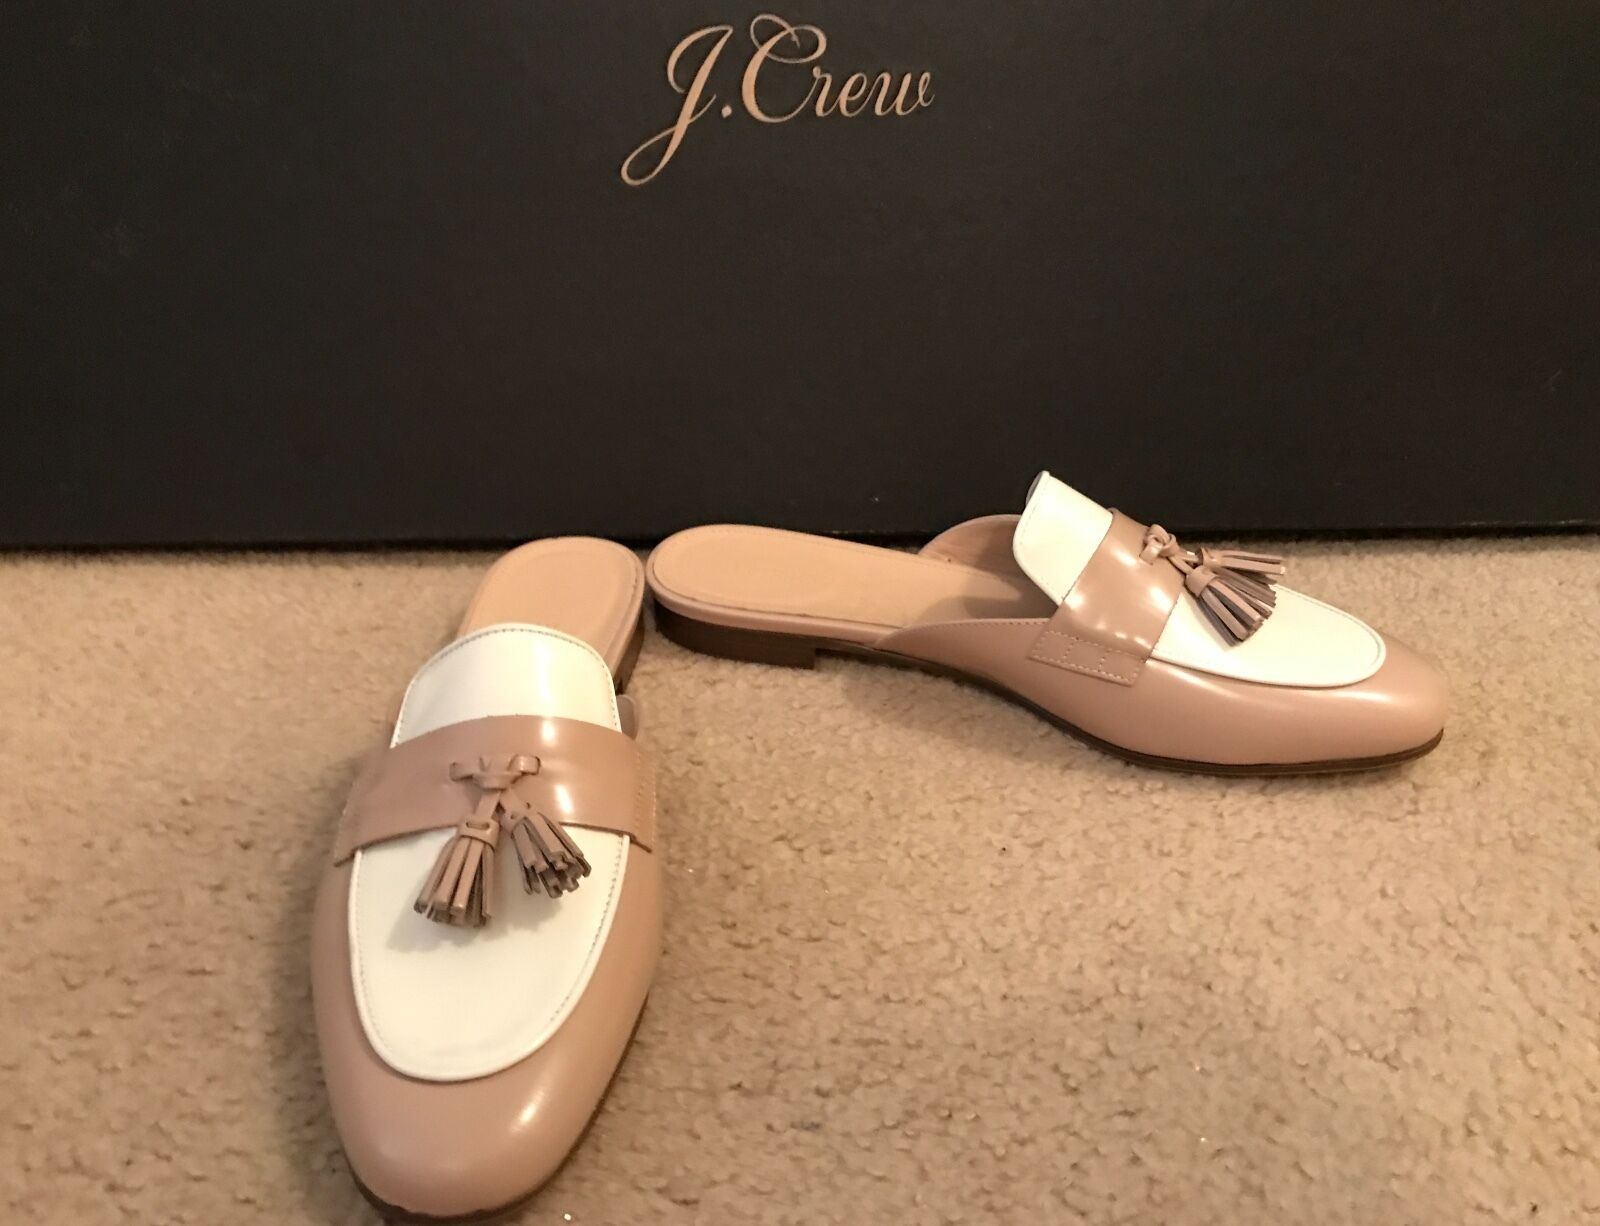 J.CREW CHARLIE MULES IN COLORBLOCK LEATHER SIZE 8M PAMPERED PINK G0947